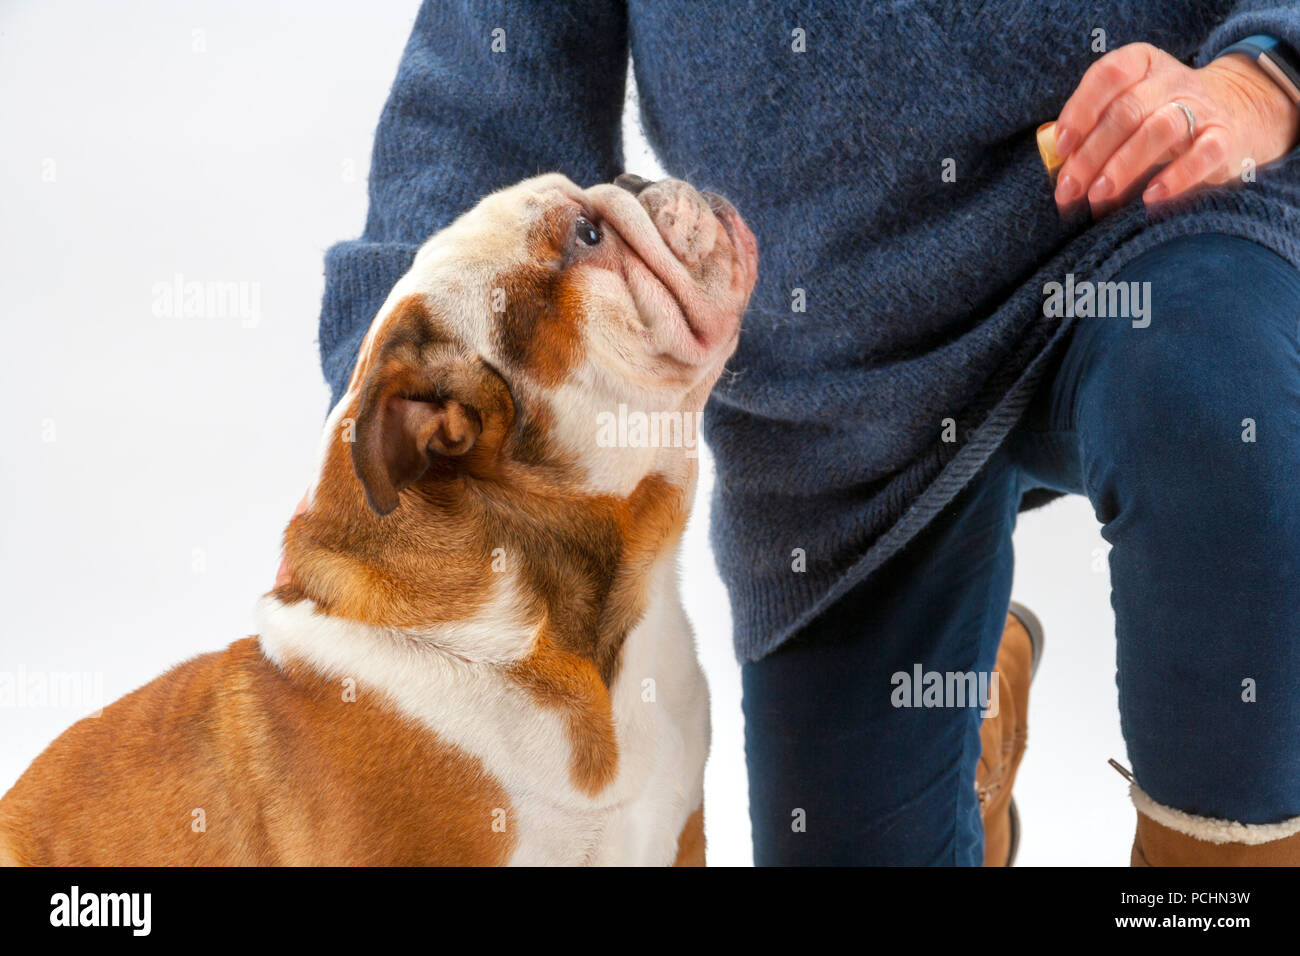 A traditional British Bulldog sits on a white seamless background waiting for his mistress to give a treat - Stock Image